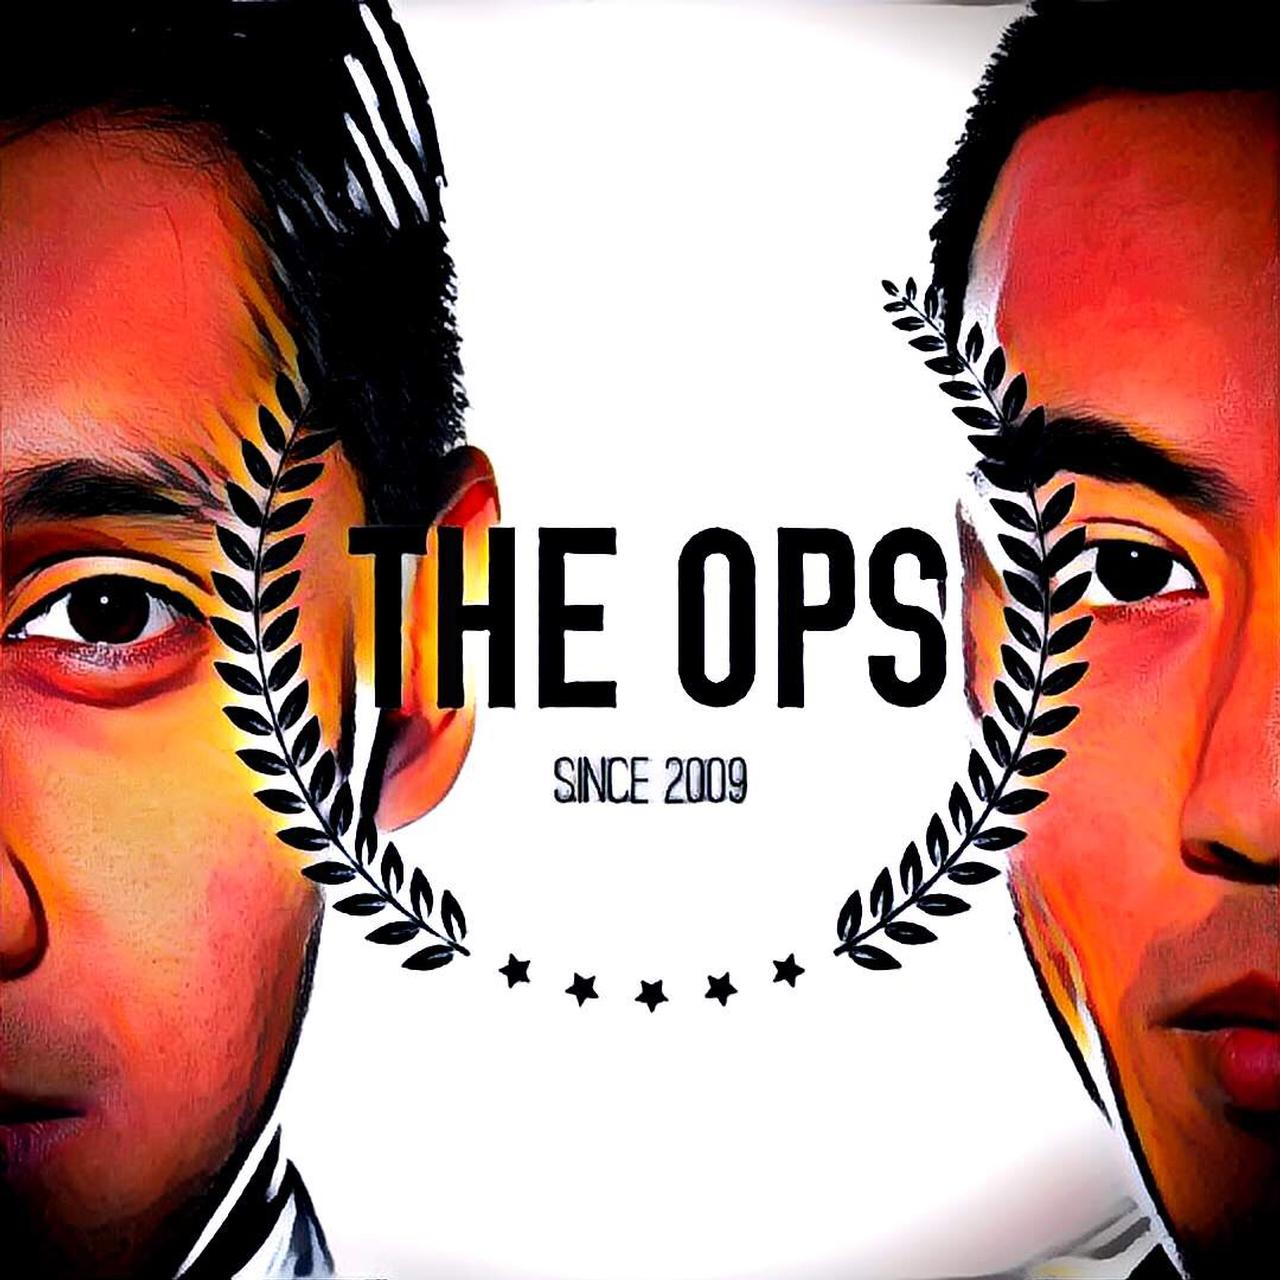 THE OPS